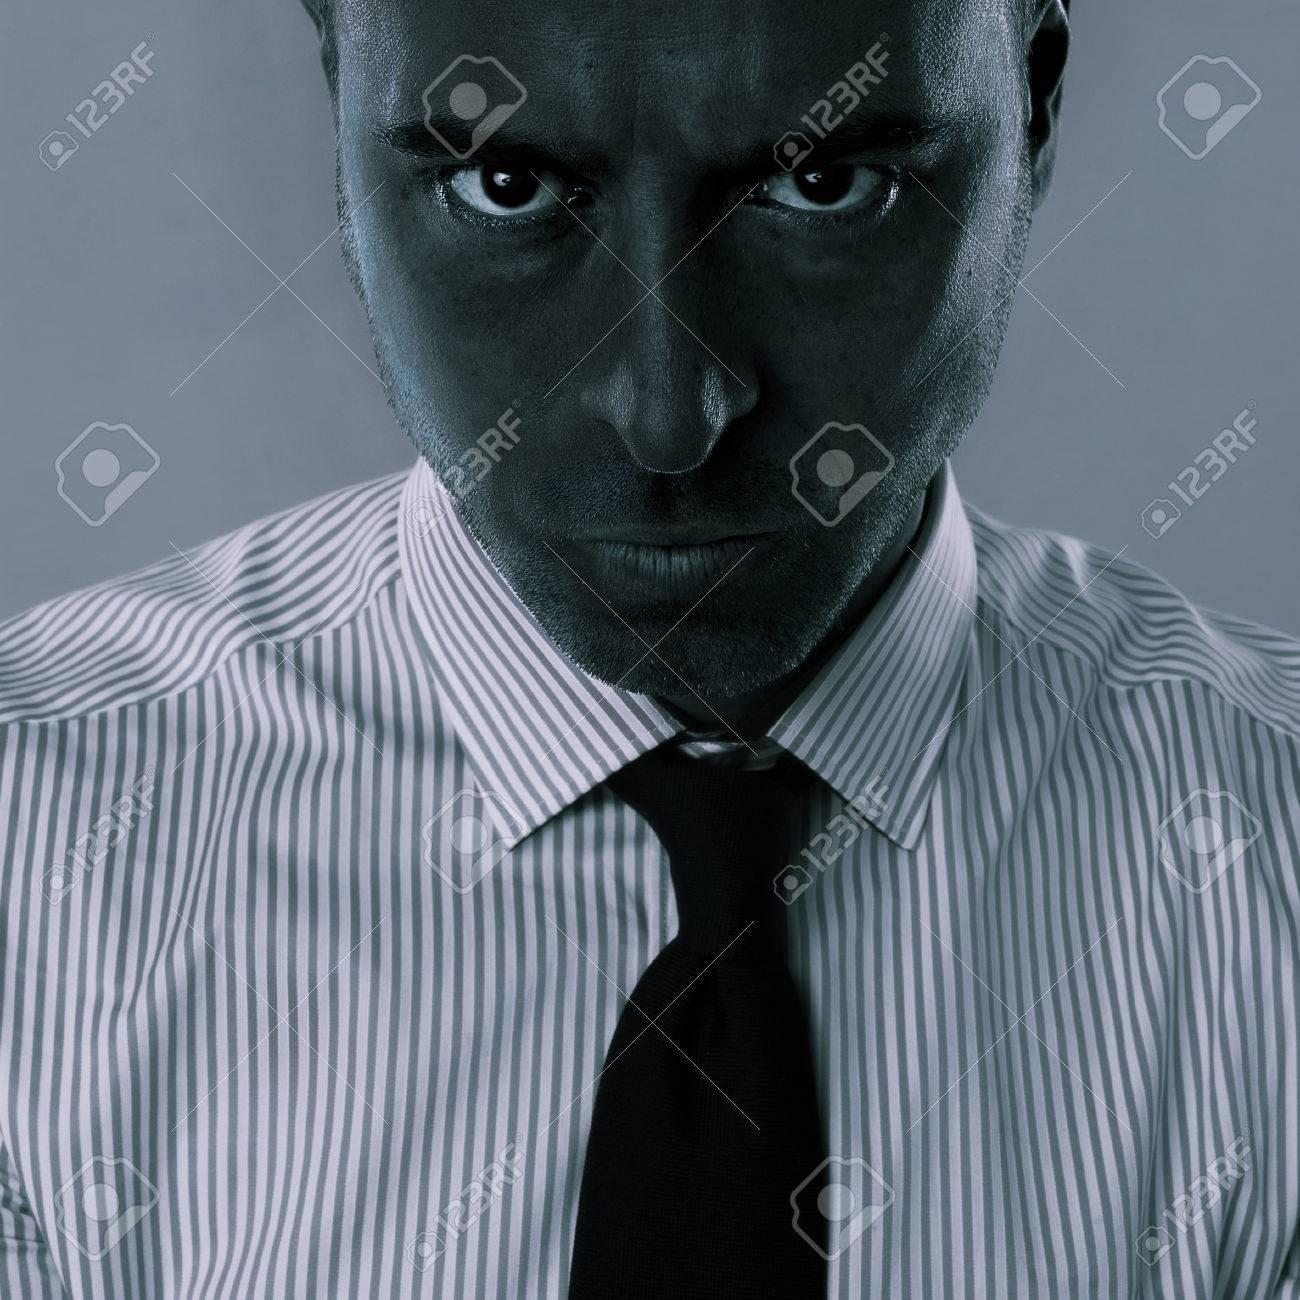 Close Up Portrait Of Angry Emotion On Face Business Man With Black Colored Skin